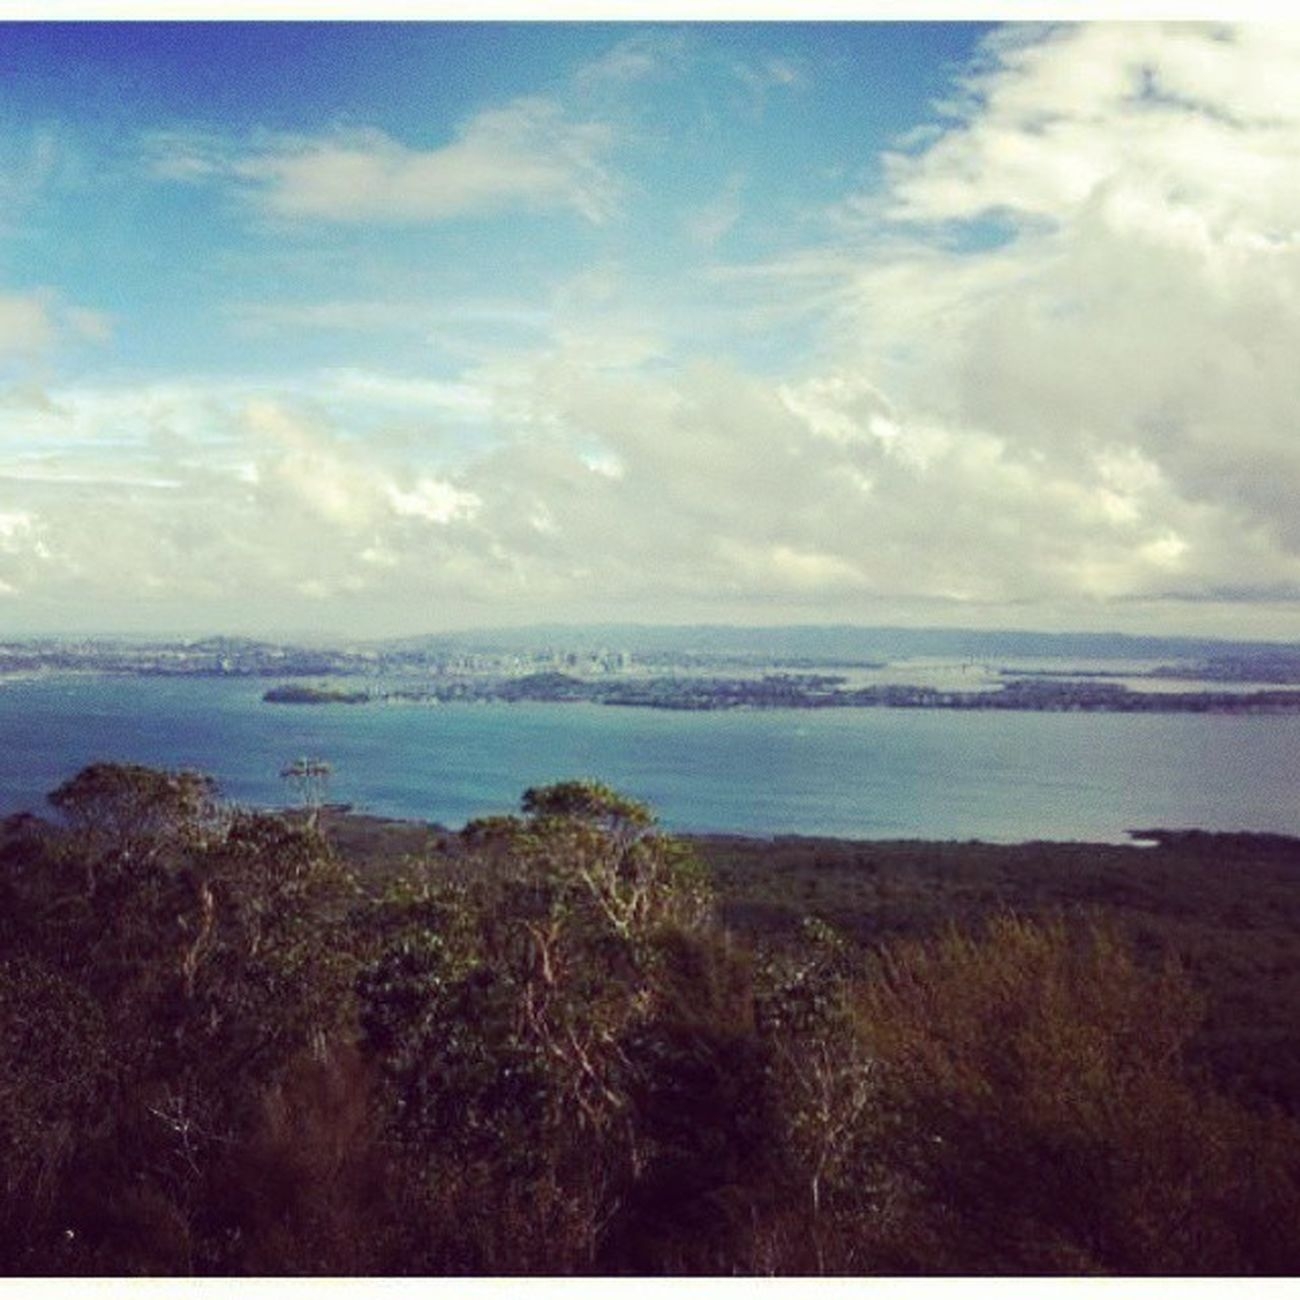 Rangitoto island New Zealand. This is shot from the top of the volcano. The sight was something to behold. Views Island Volcano Rangitoto newzealand auckland australia nature clean holiday joyful company